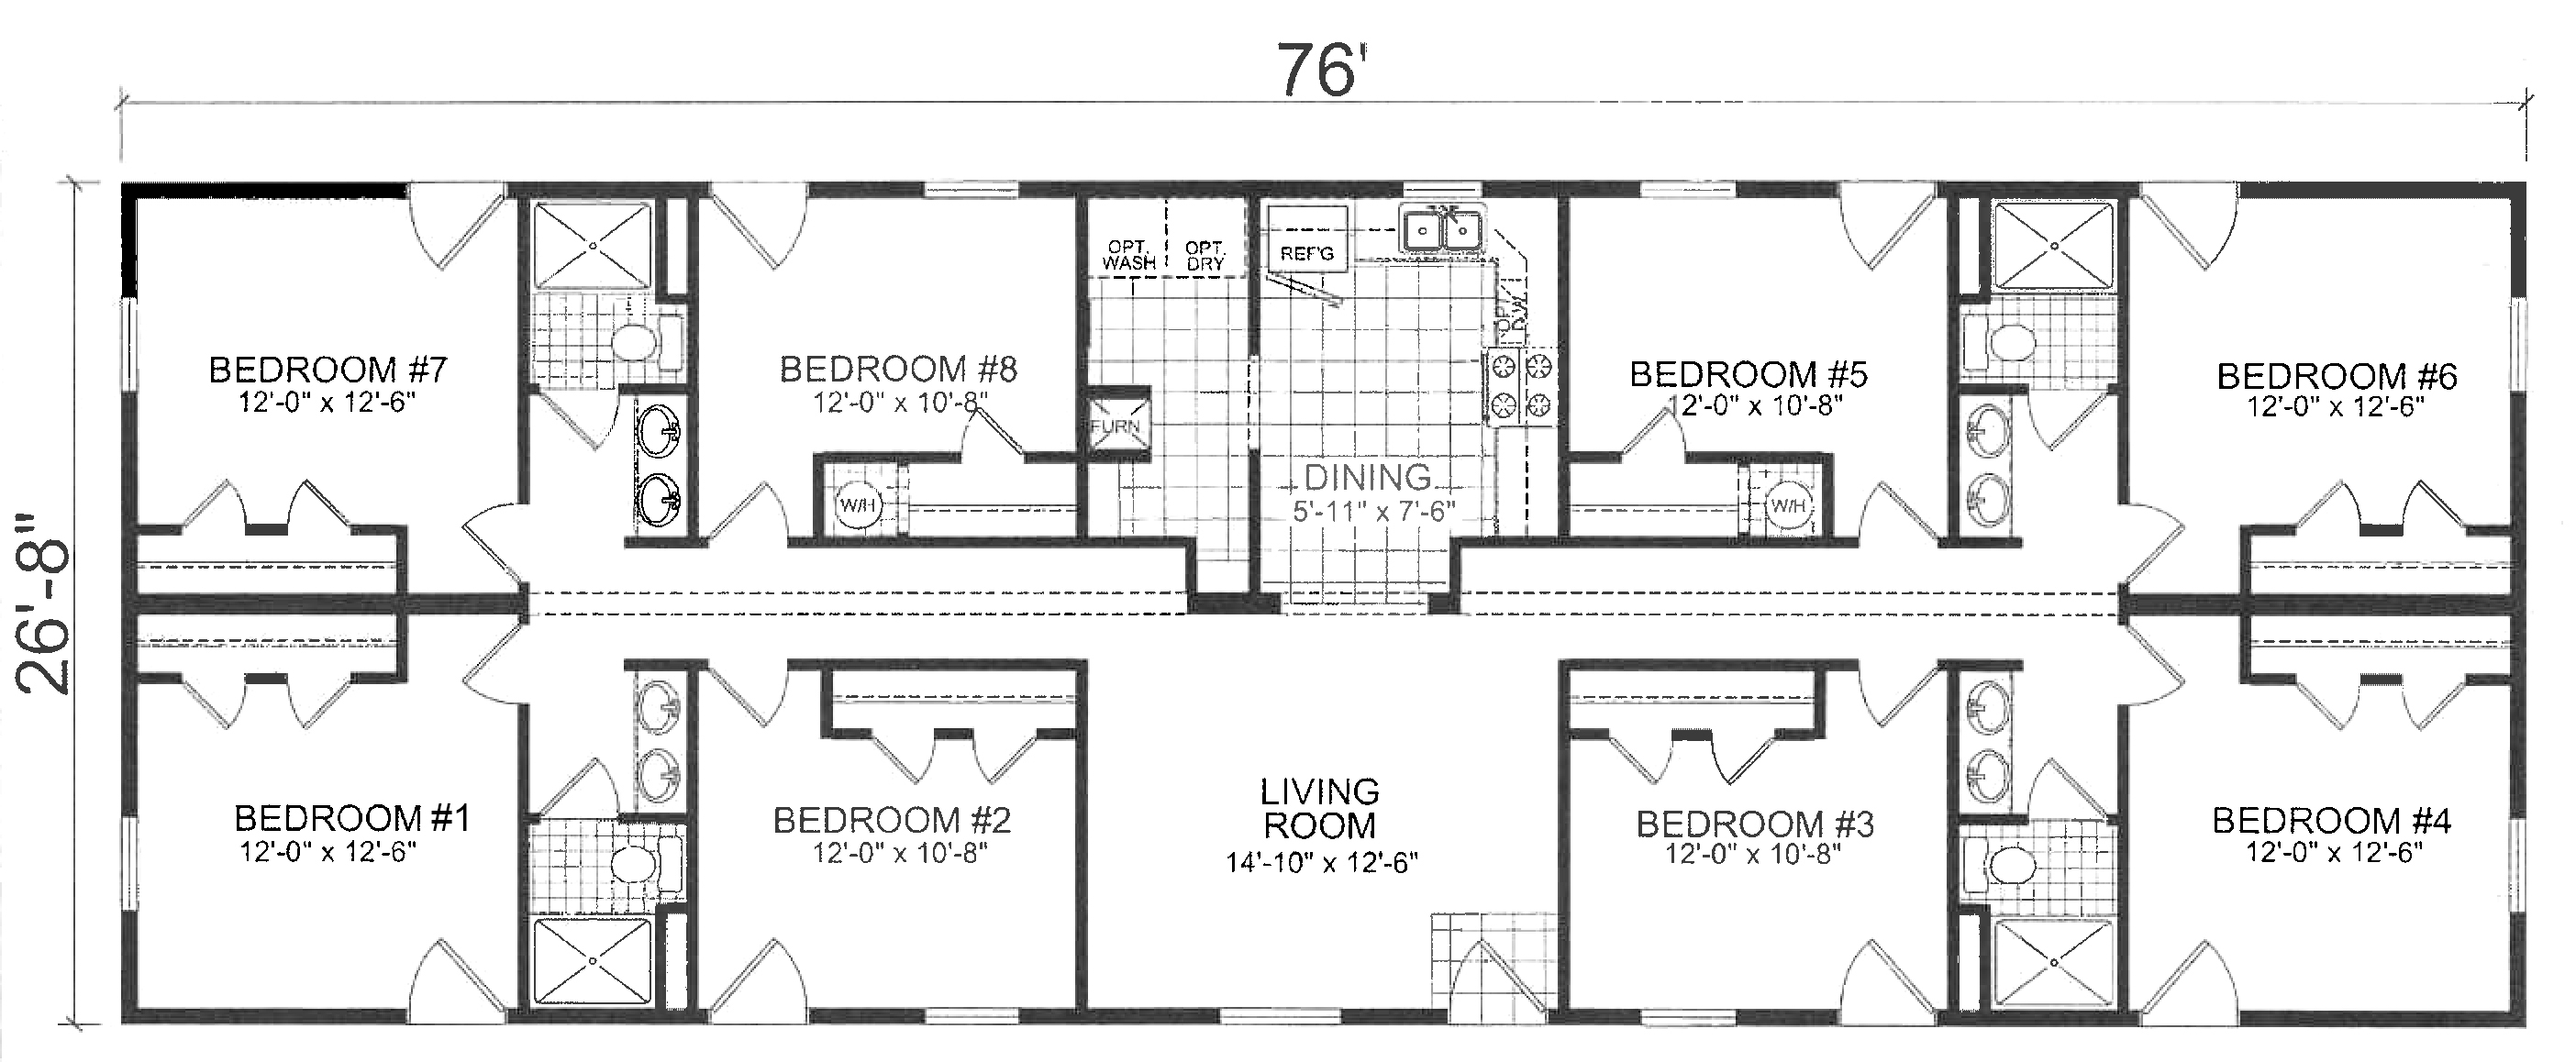 Pin 10 floor plan on pinterest Lodge floor plans